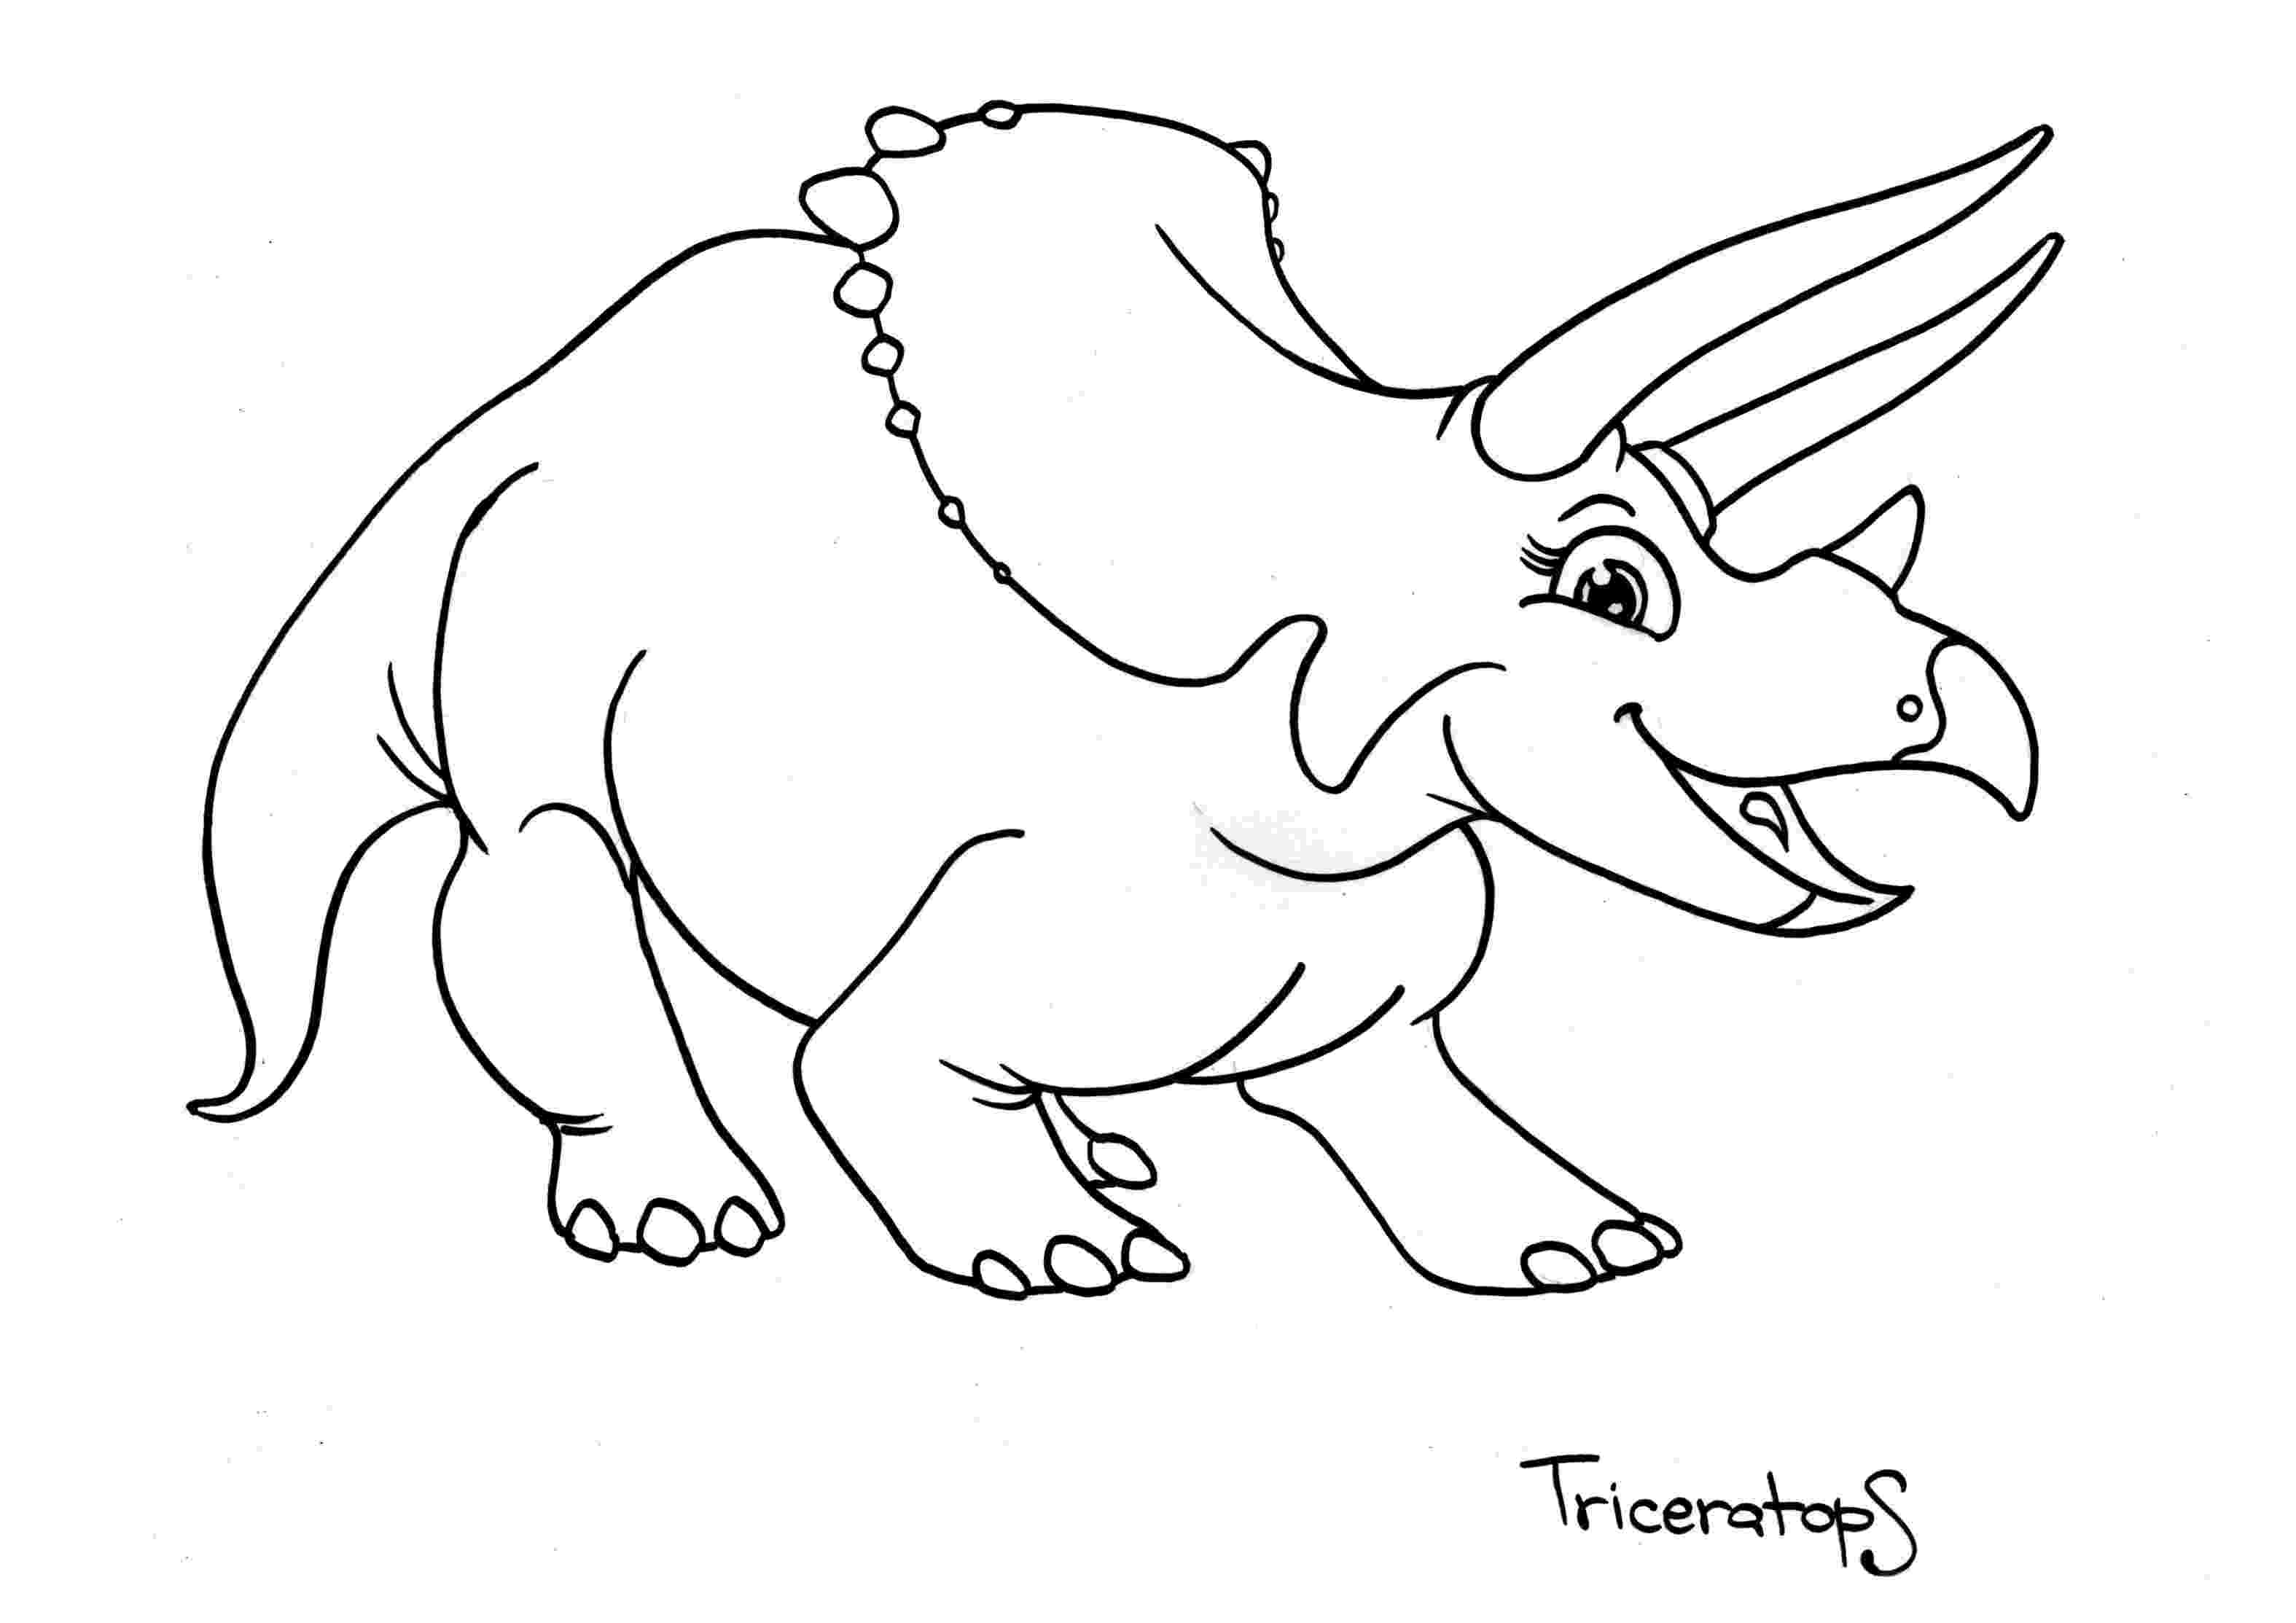 free printable dinosaur printable dinosaur coloring pages for kids cool2bkids printable free dinosaur